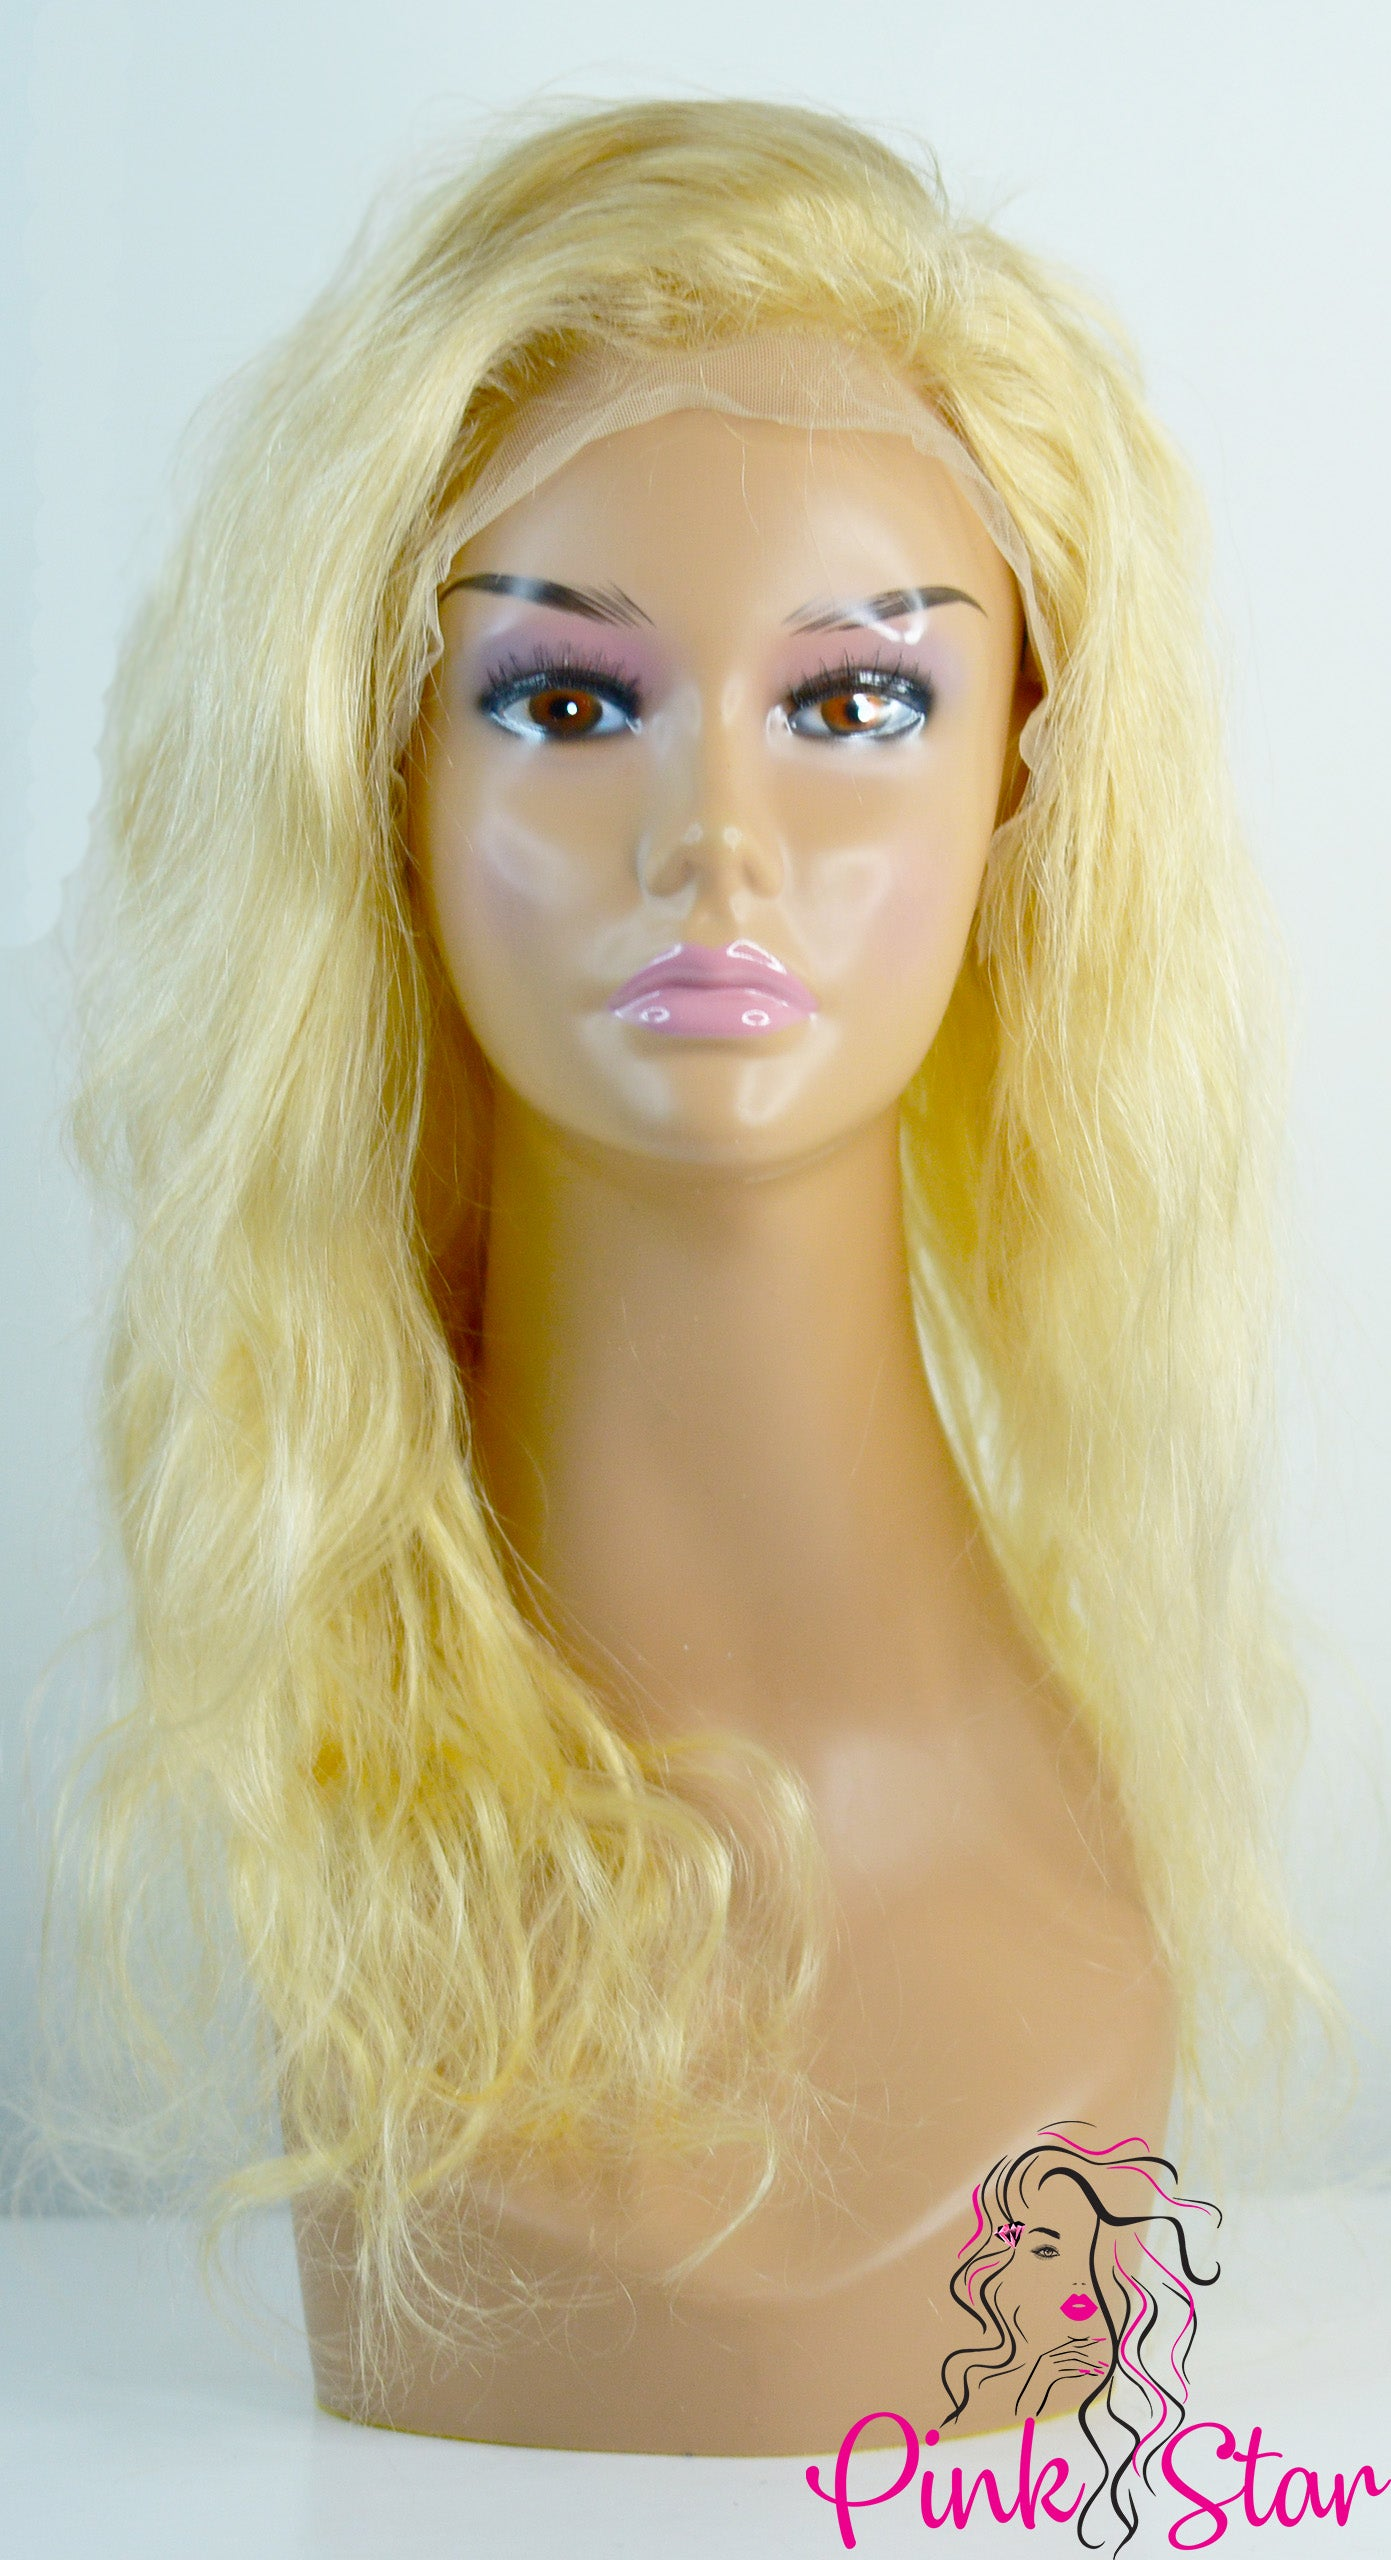 Full Lace Wigs - BLONDE 613 - The Pink Star Company